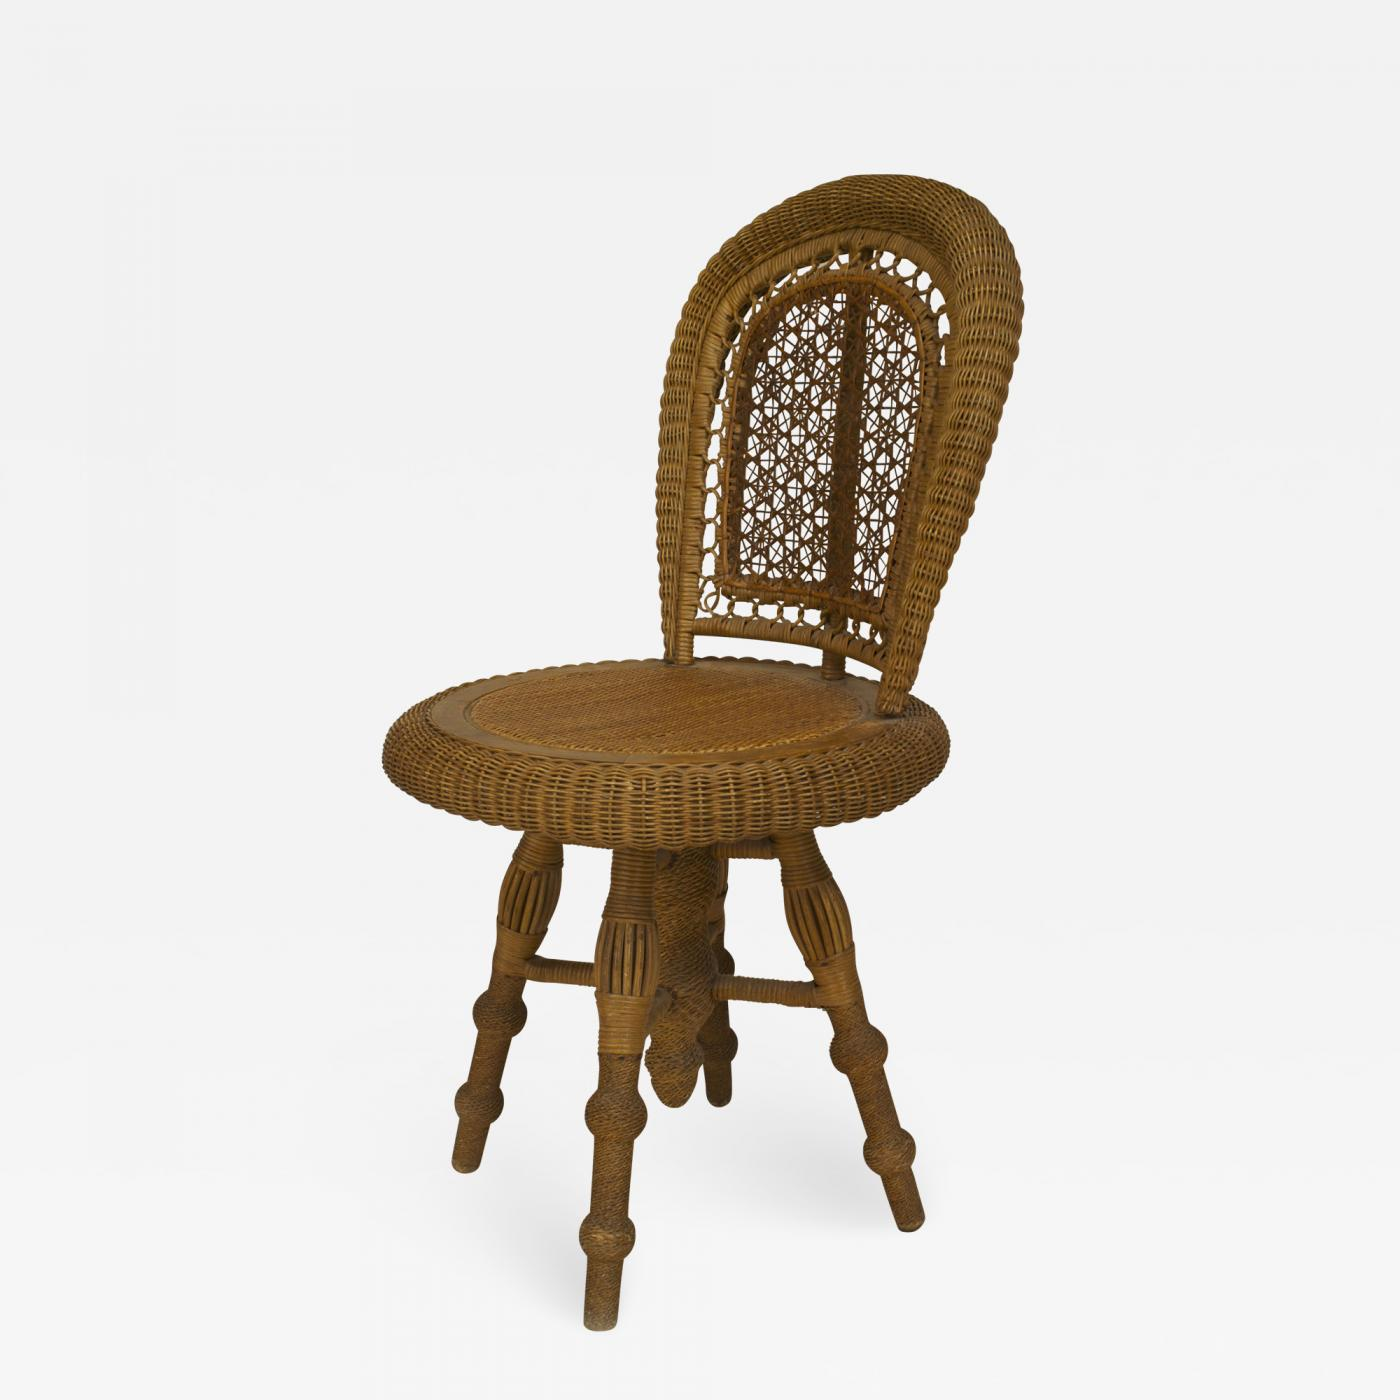 Wicker Side Chair Wakefield Rattan Co American Victorian Natural Wicker